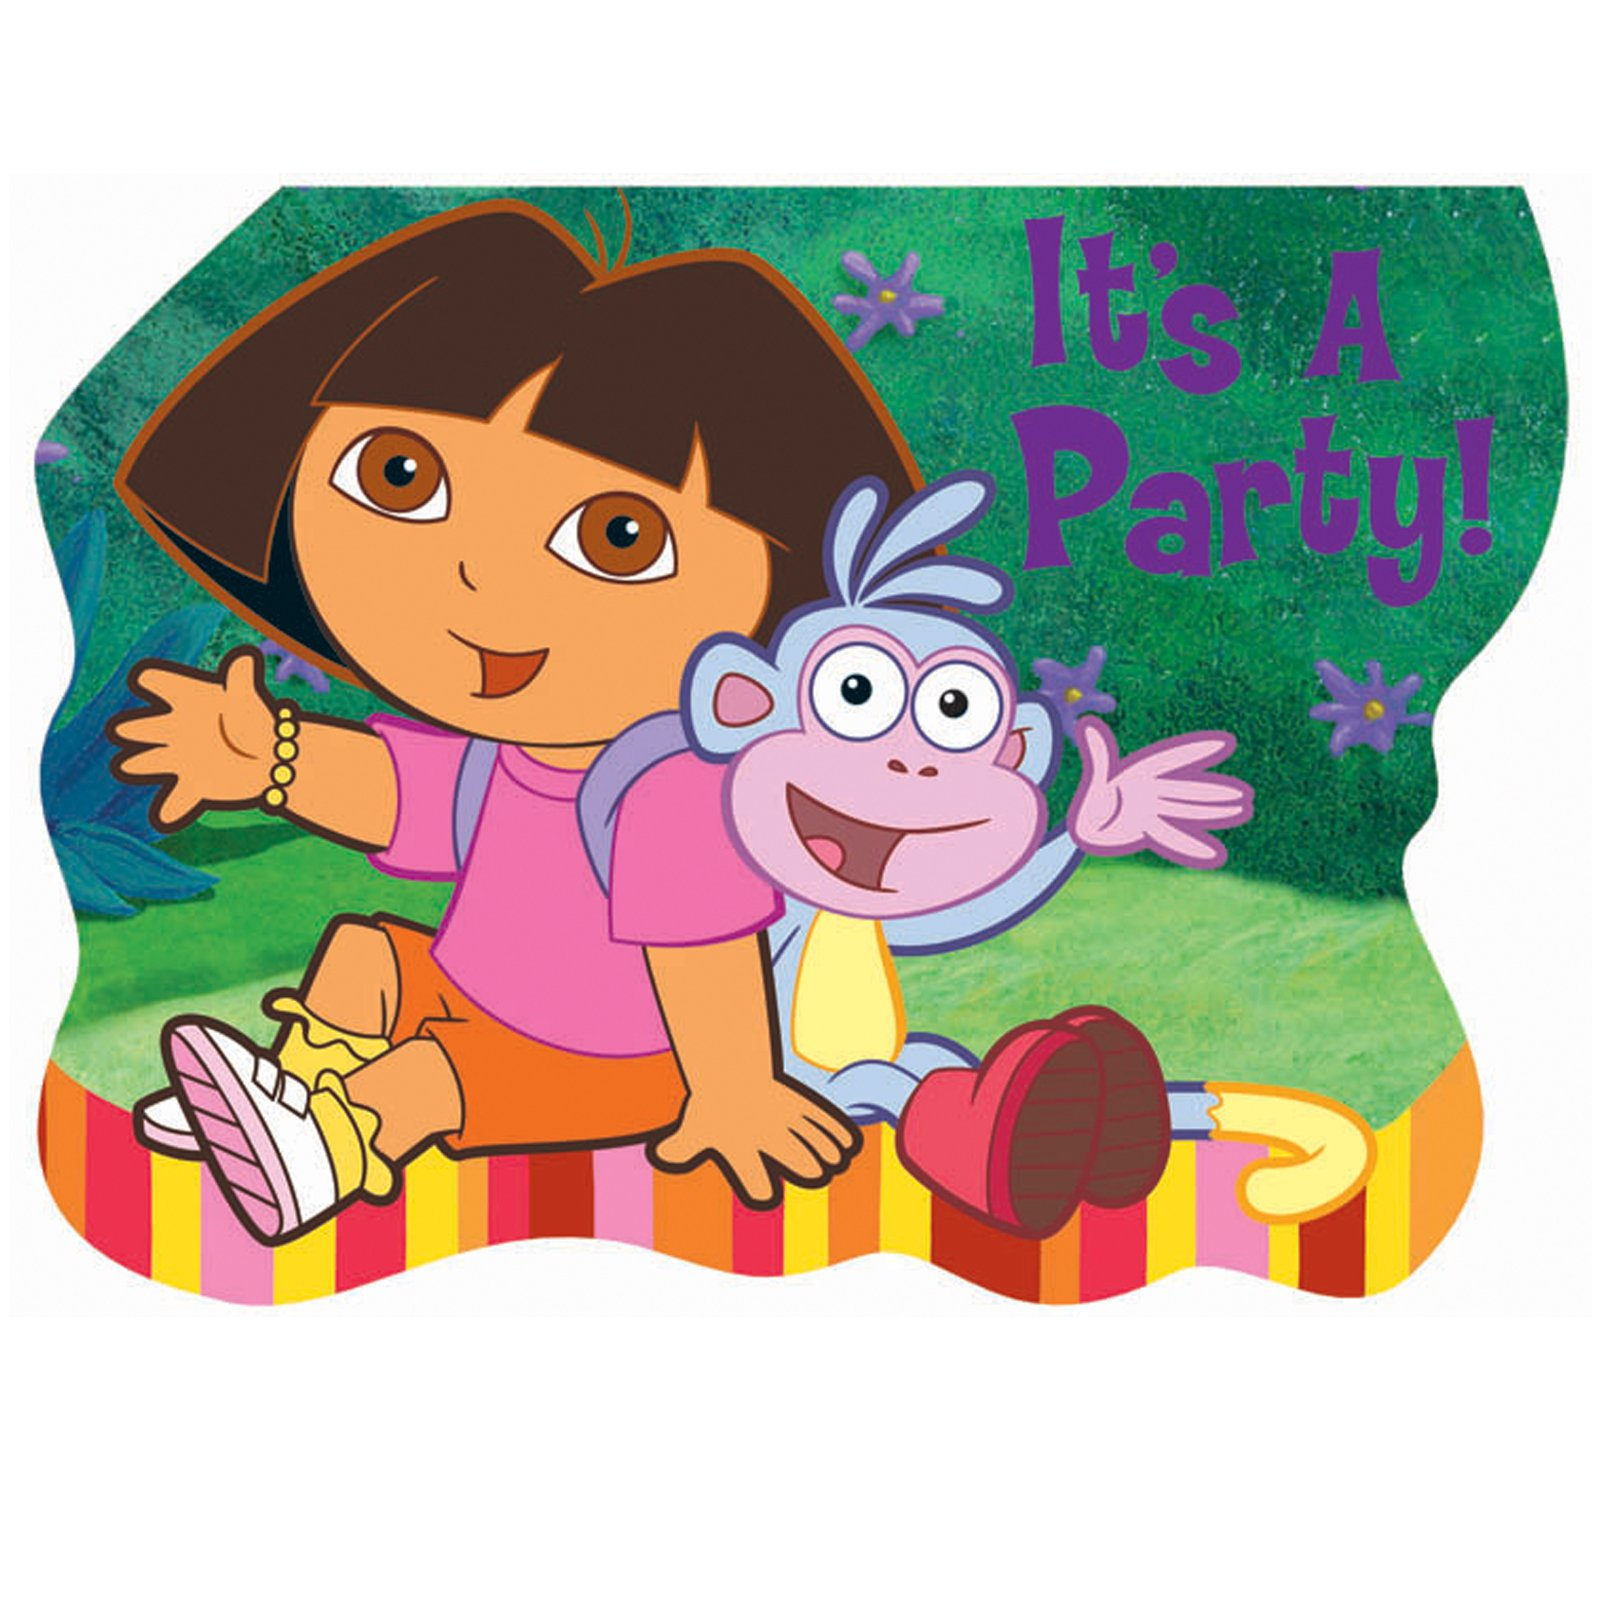 Dora and Friends Invitations (8 count)